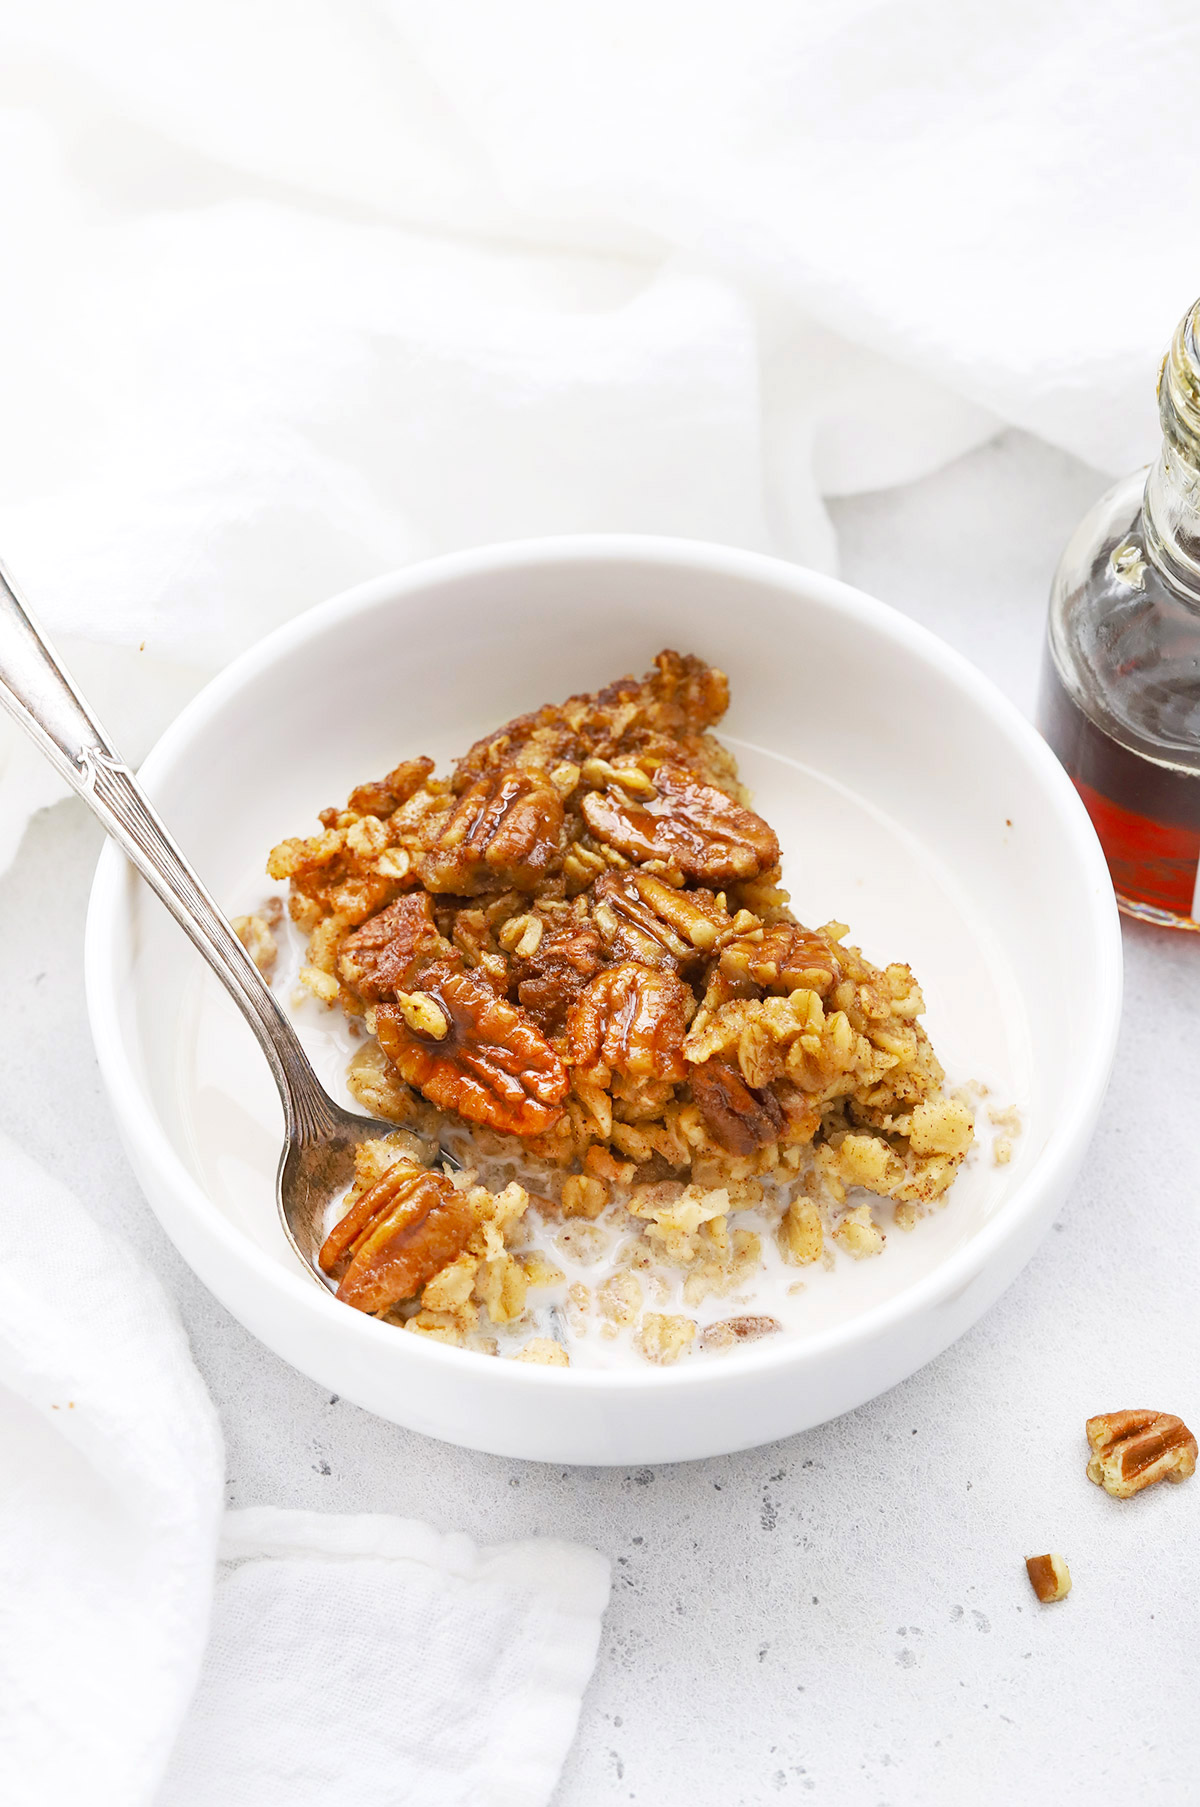 Warm bowl of pecan pie baked oatmeal drizzled with almond milk